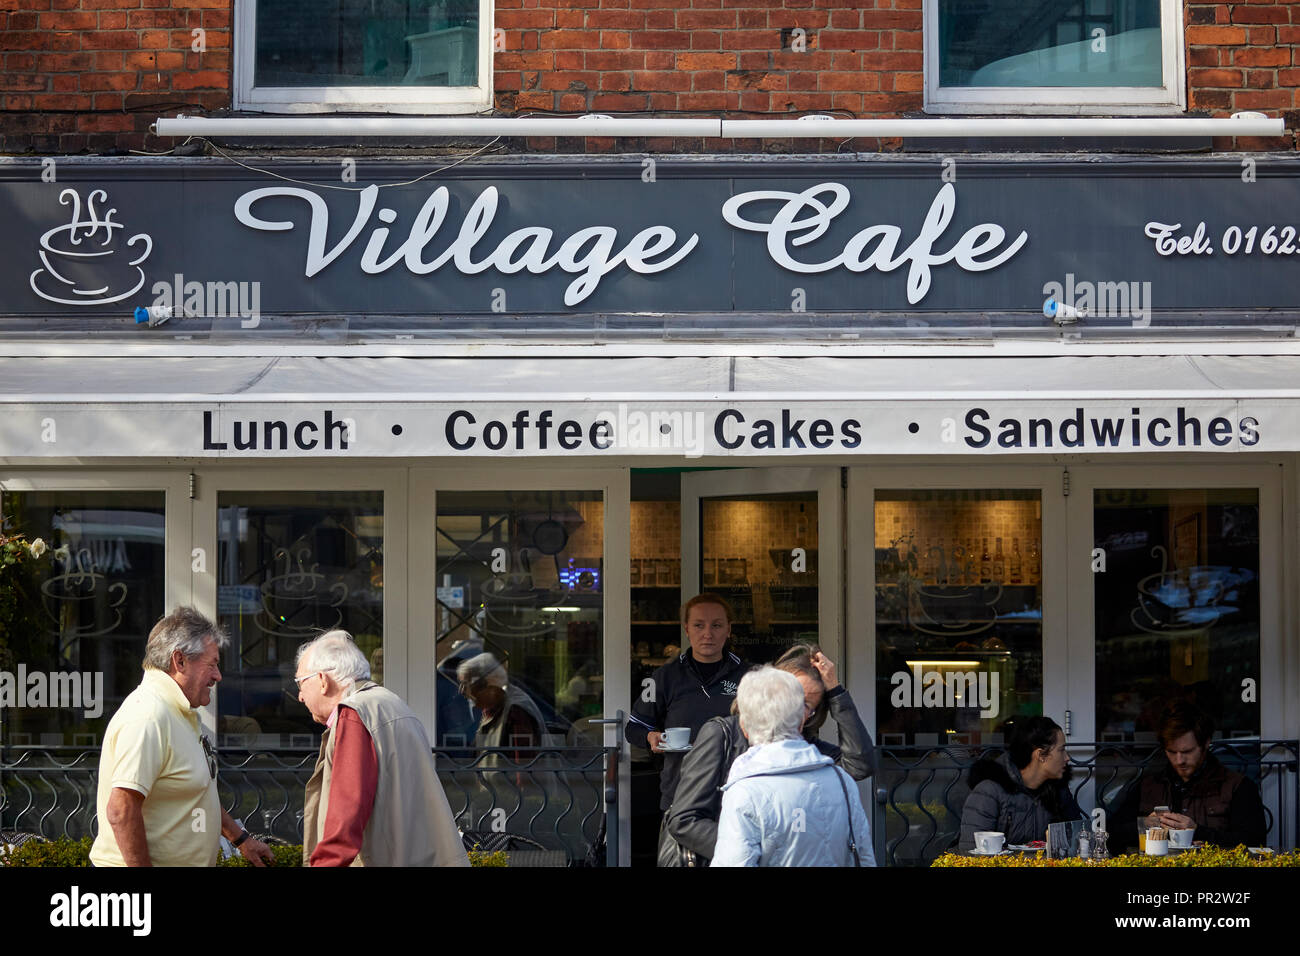 Alderley Edge, Cheshire, England. Village Cafe in the   village on London Road - Stock Image